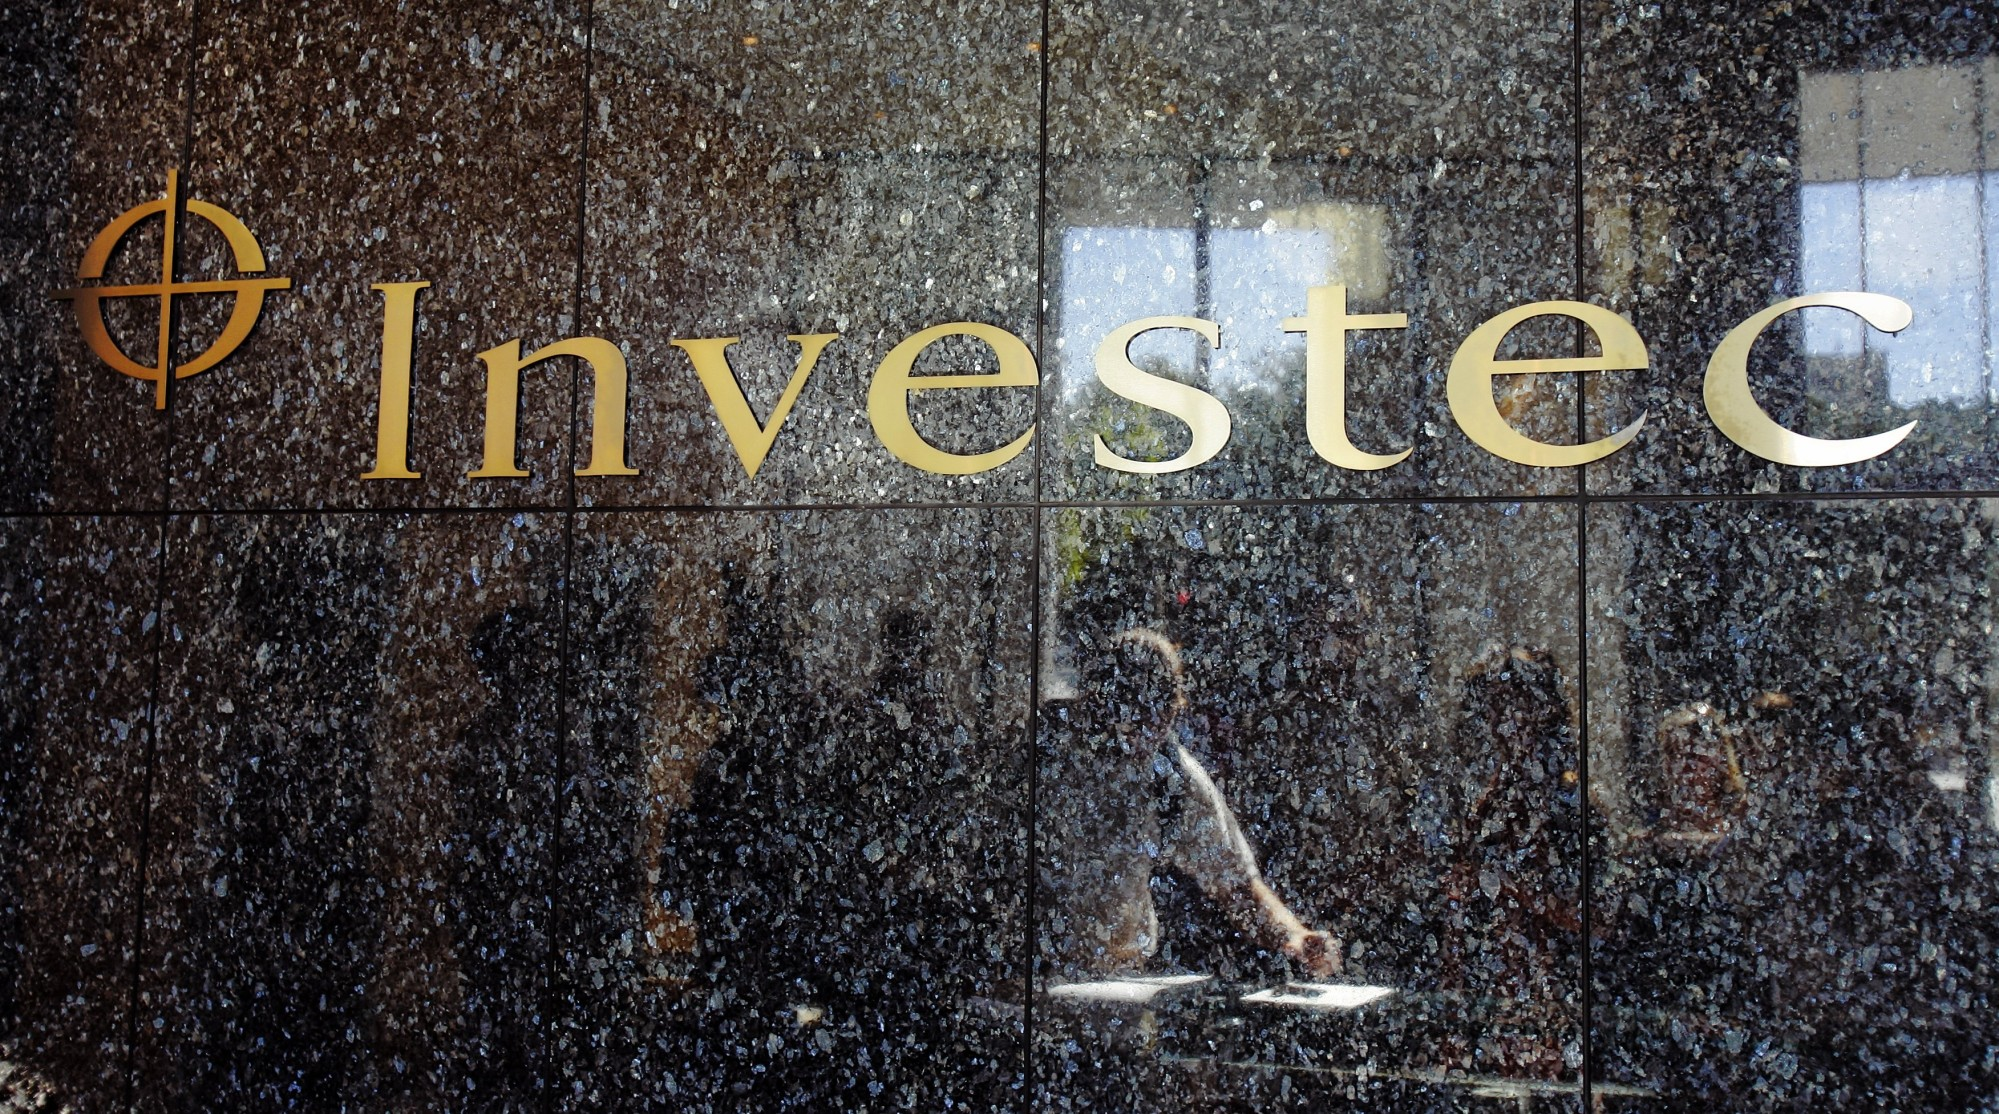 bloomberg.com - Vernon Wessels - Investec Spins Off Asset-Management Unit as Founders Depart